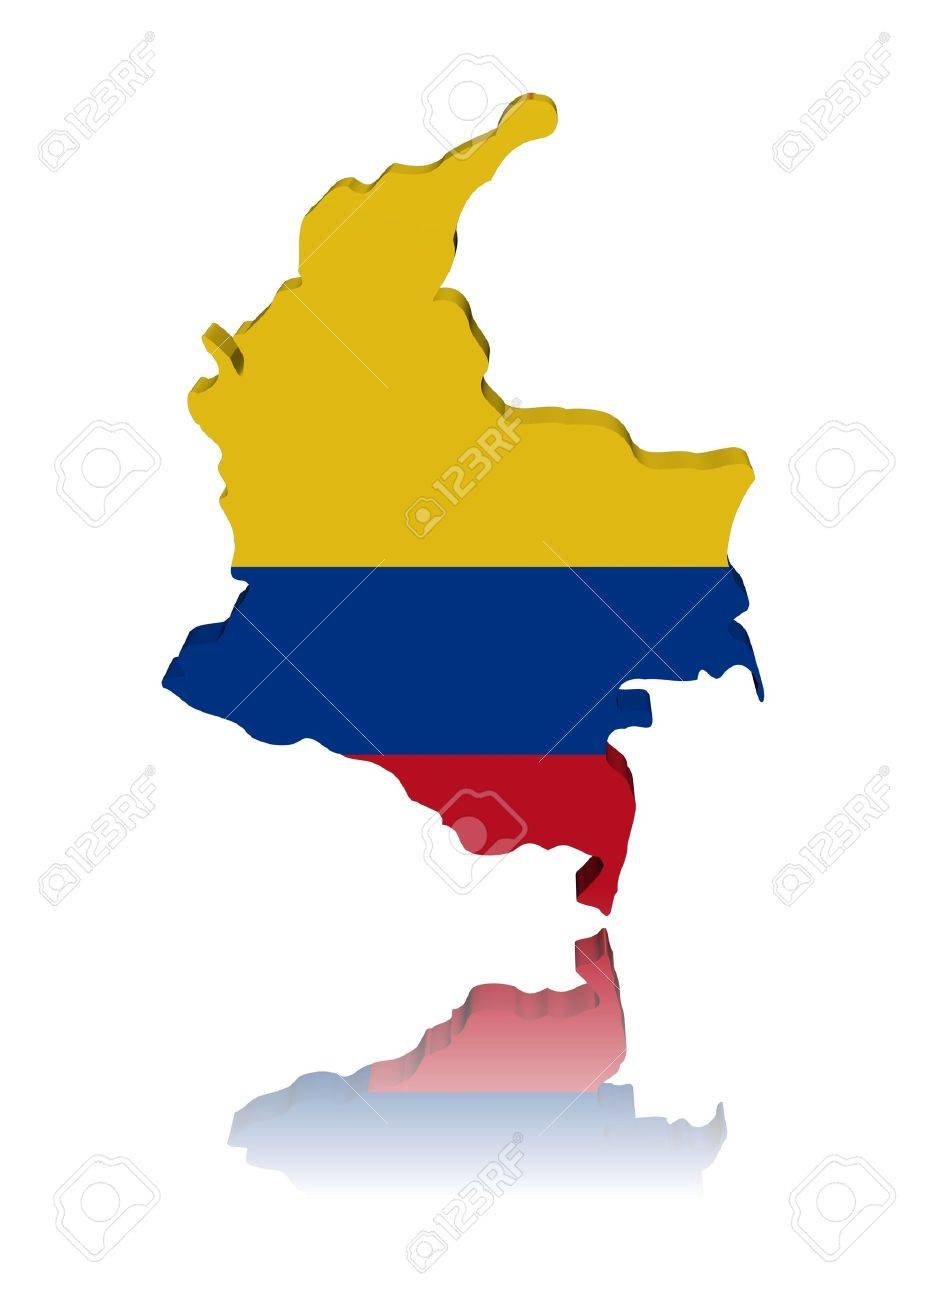 Colombia Map Flag 3d Render With Reflection Illustration Stock Photo